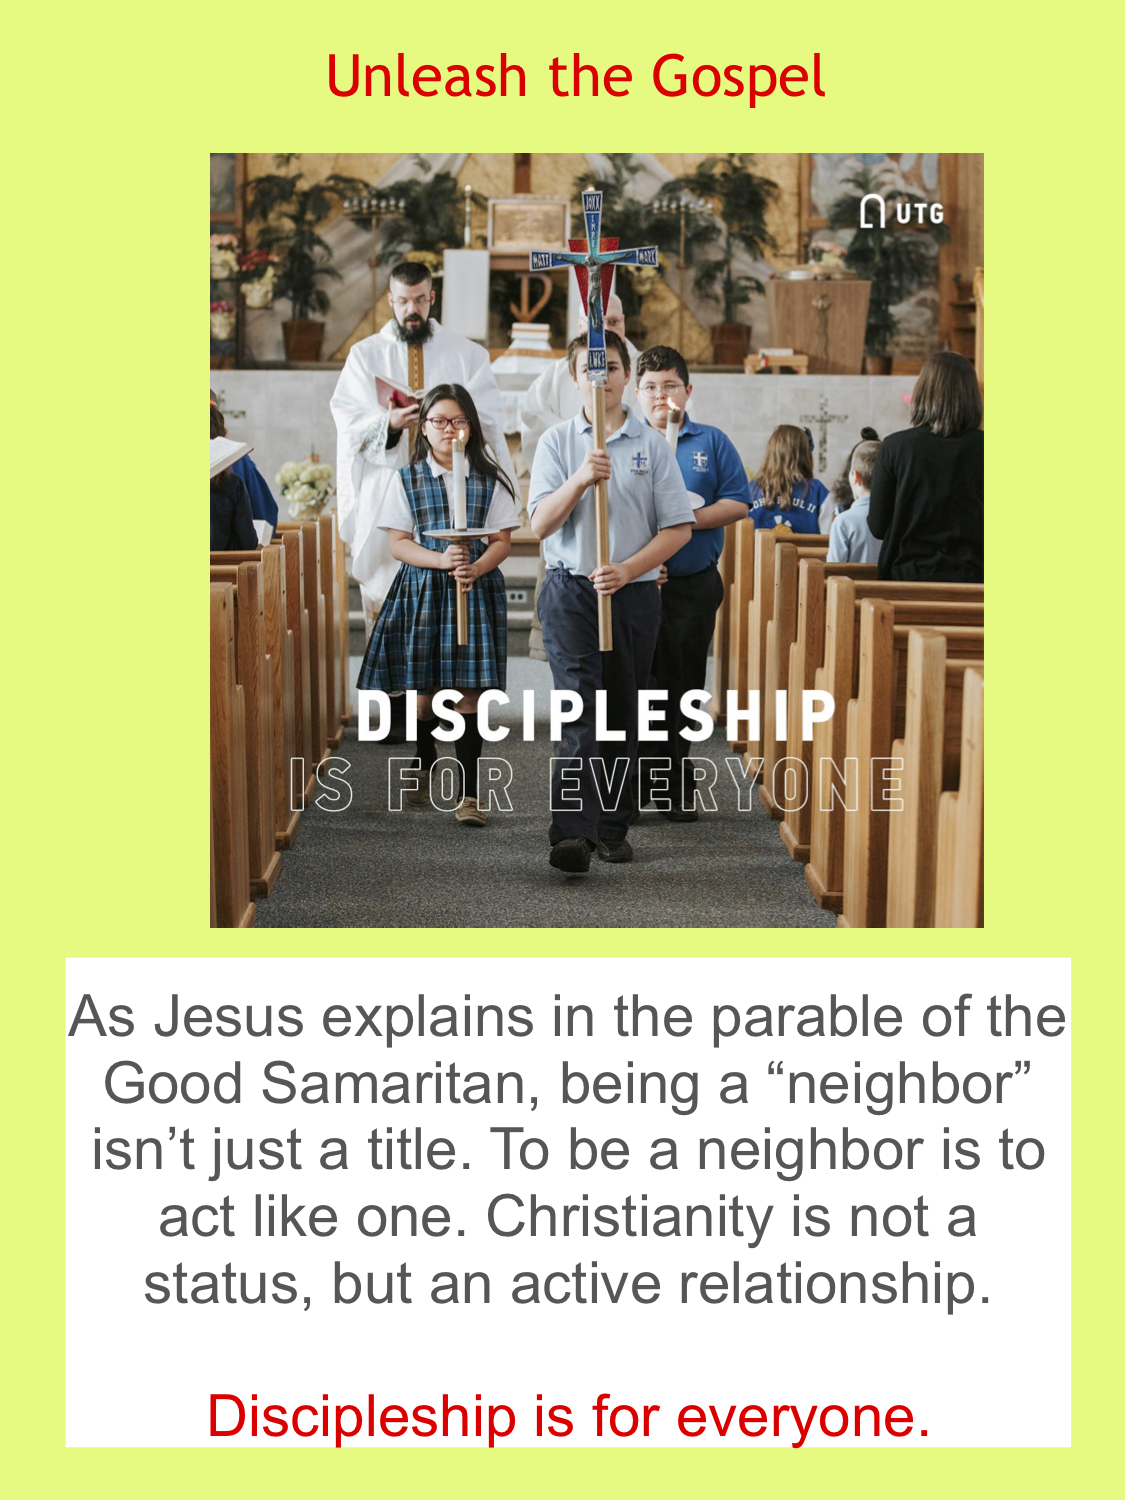 Unleash the Gospel - Discipleship for Everyone